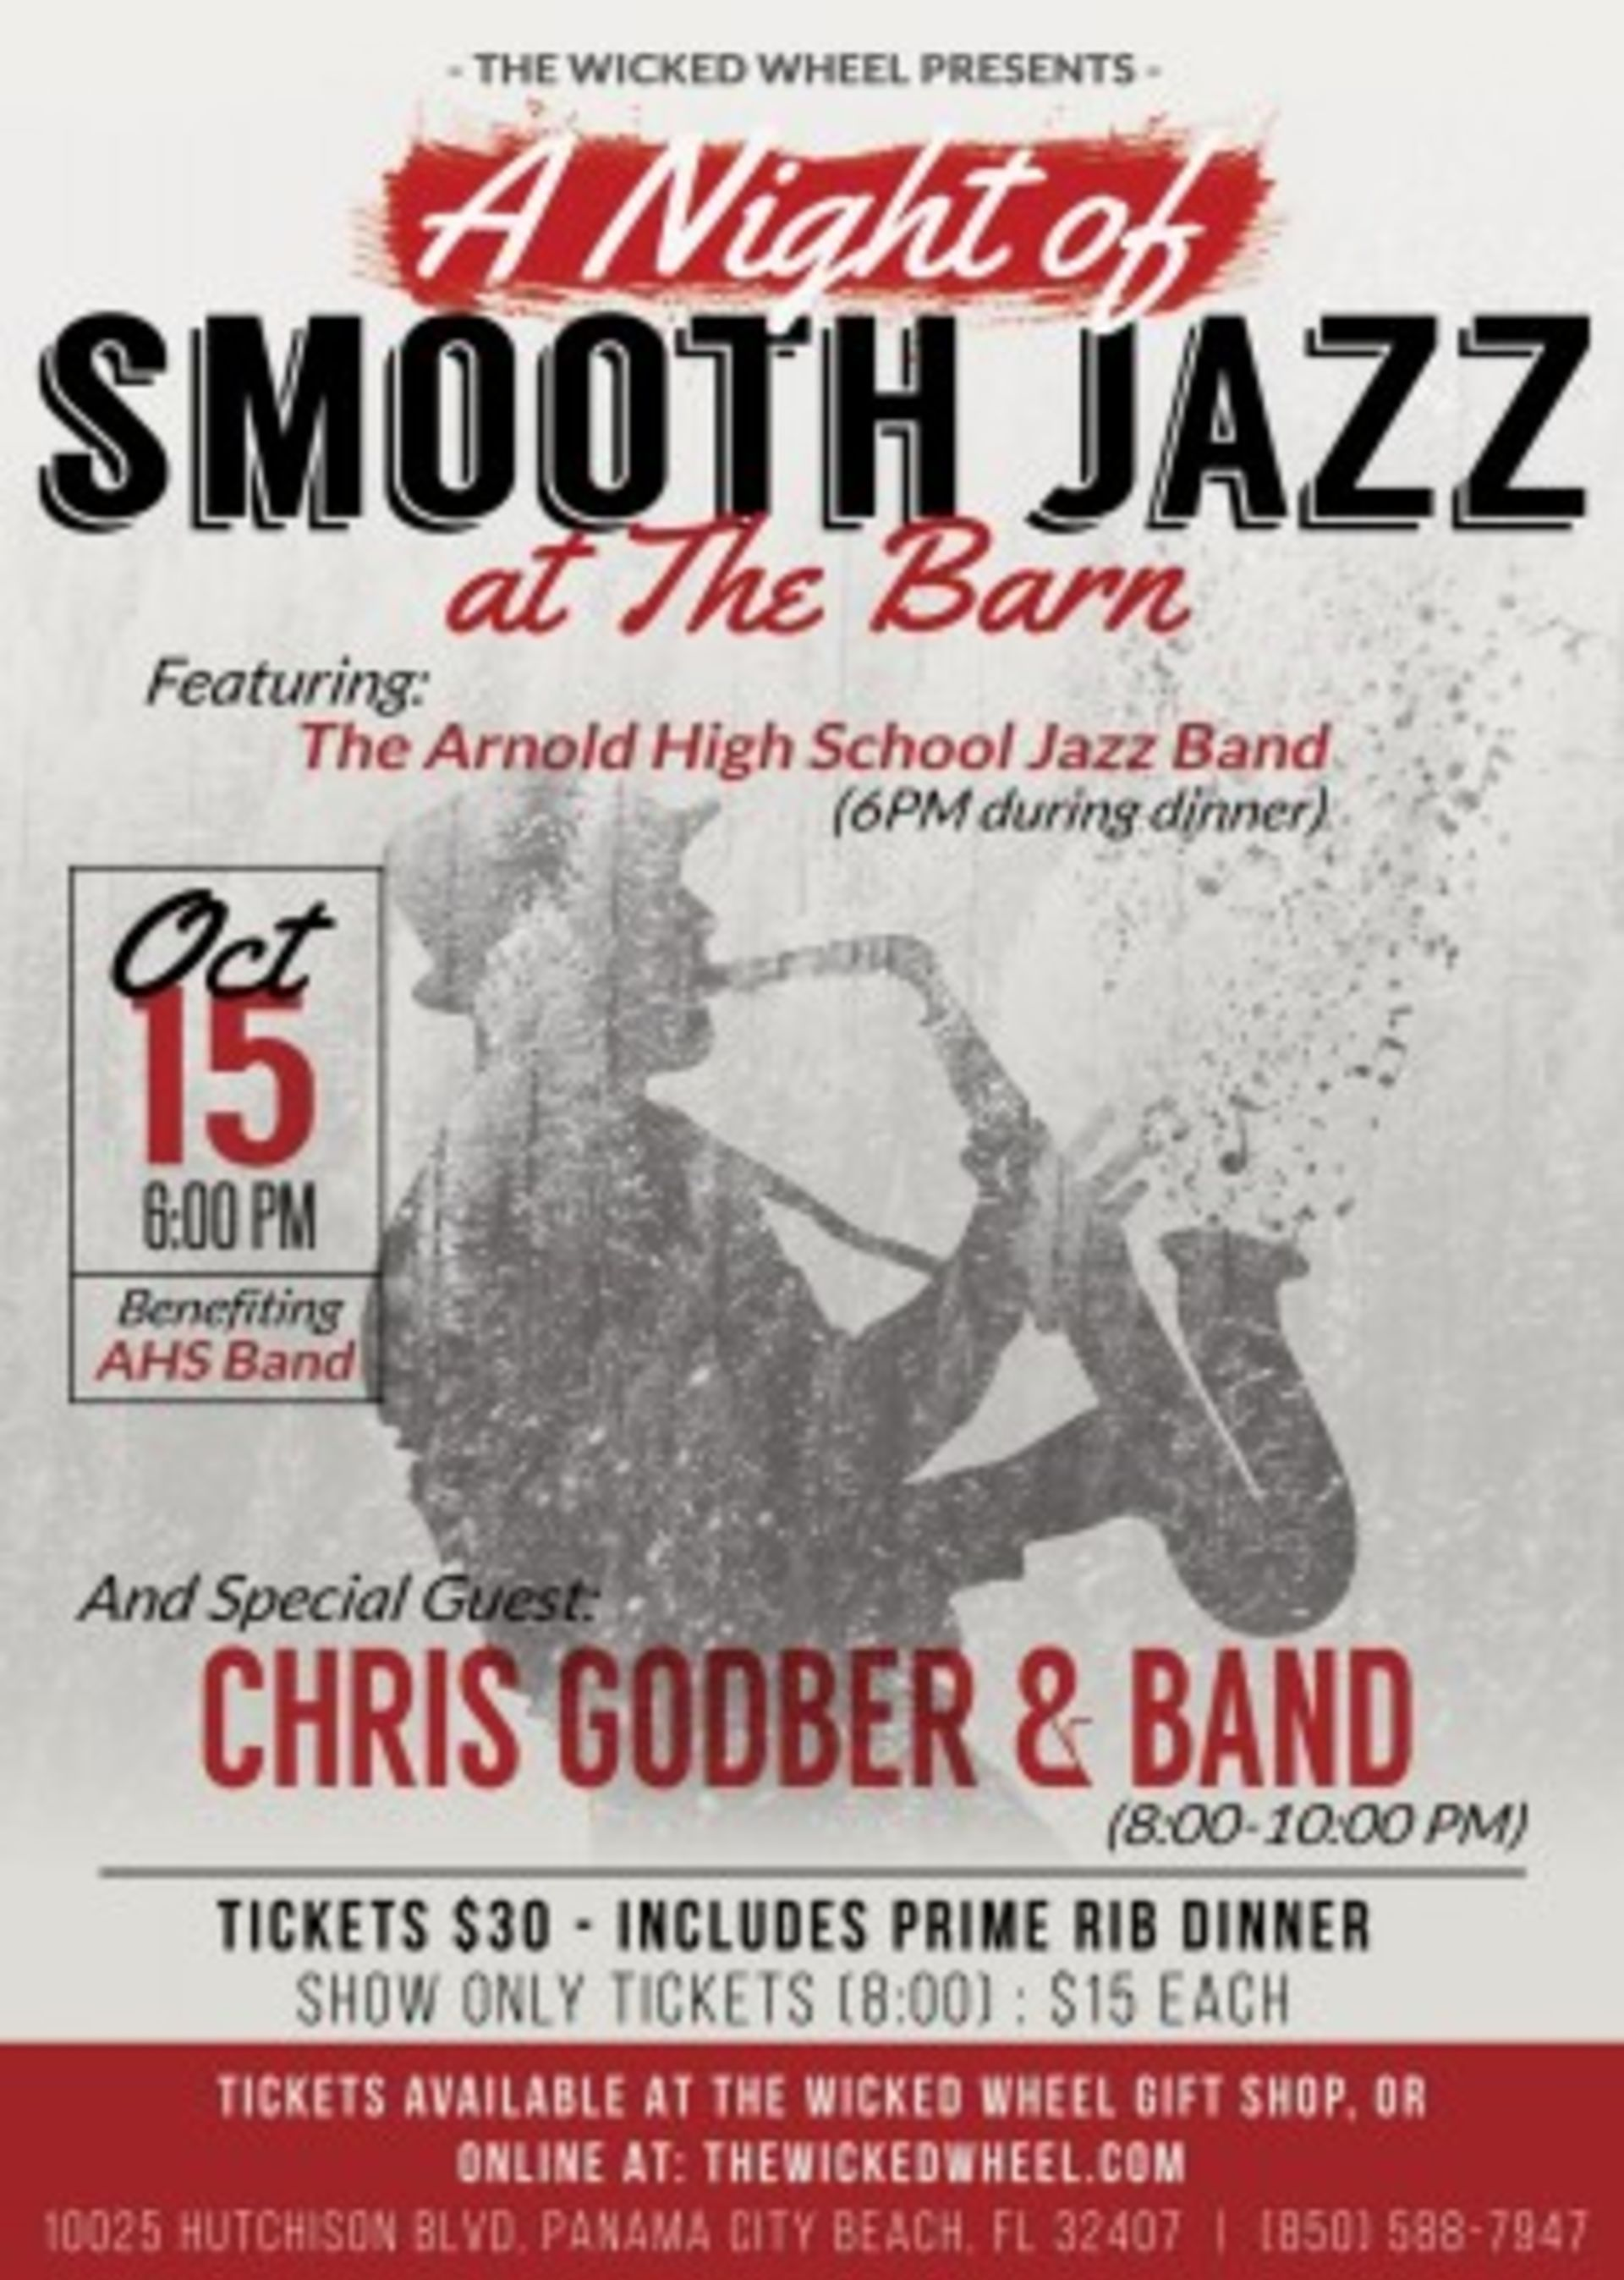 A Night of Smooth Jazz at The Barn  Presented by The Barn at The Barn at The Wicked Wheel